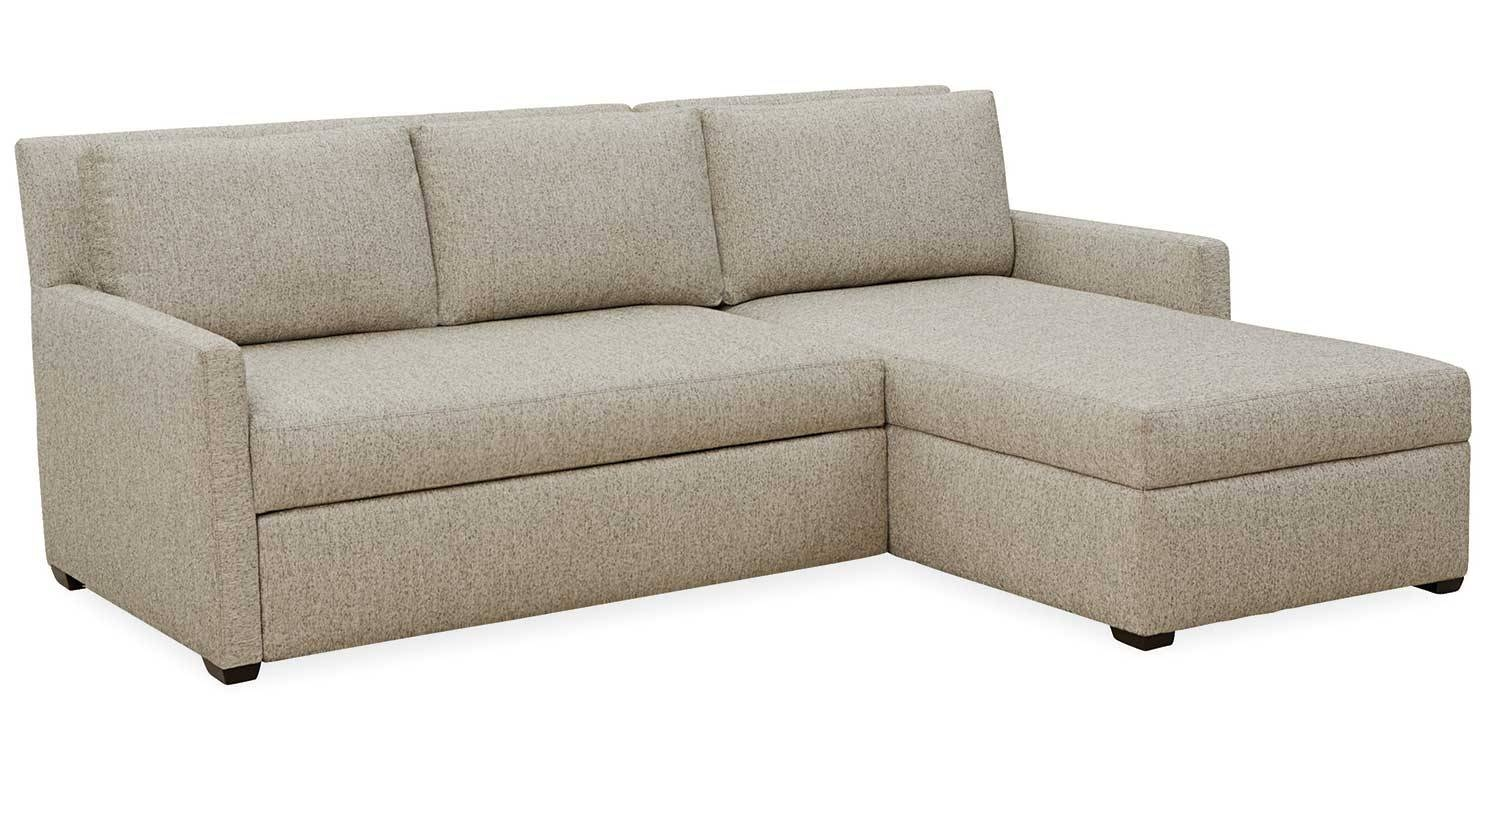 Circle Furniture - Sleeper Sofa | Sectional Sleepers | Circle intended for Austin Sectional Sofa (Image 6 of 30)